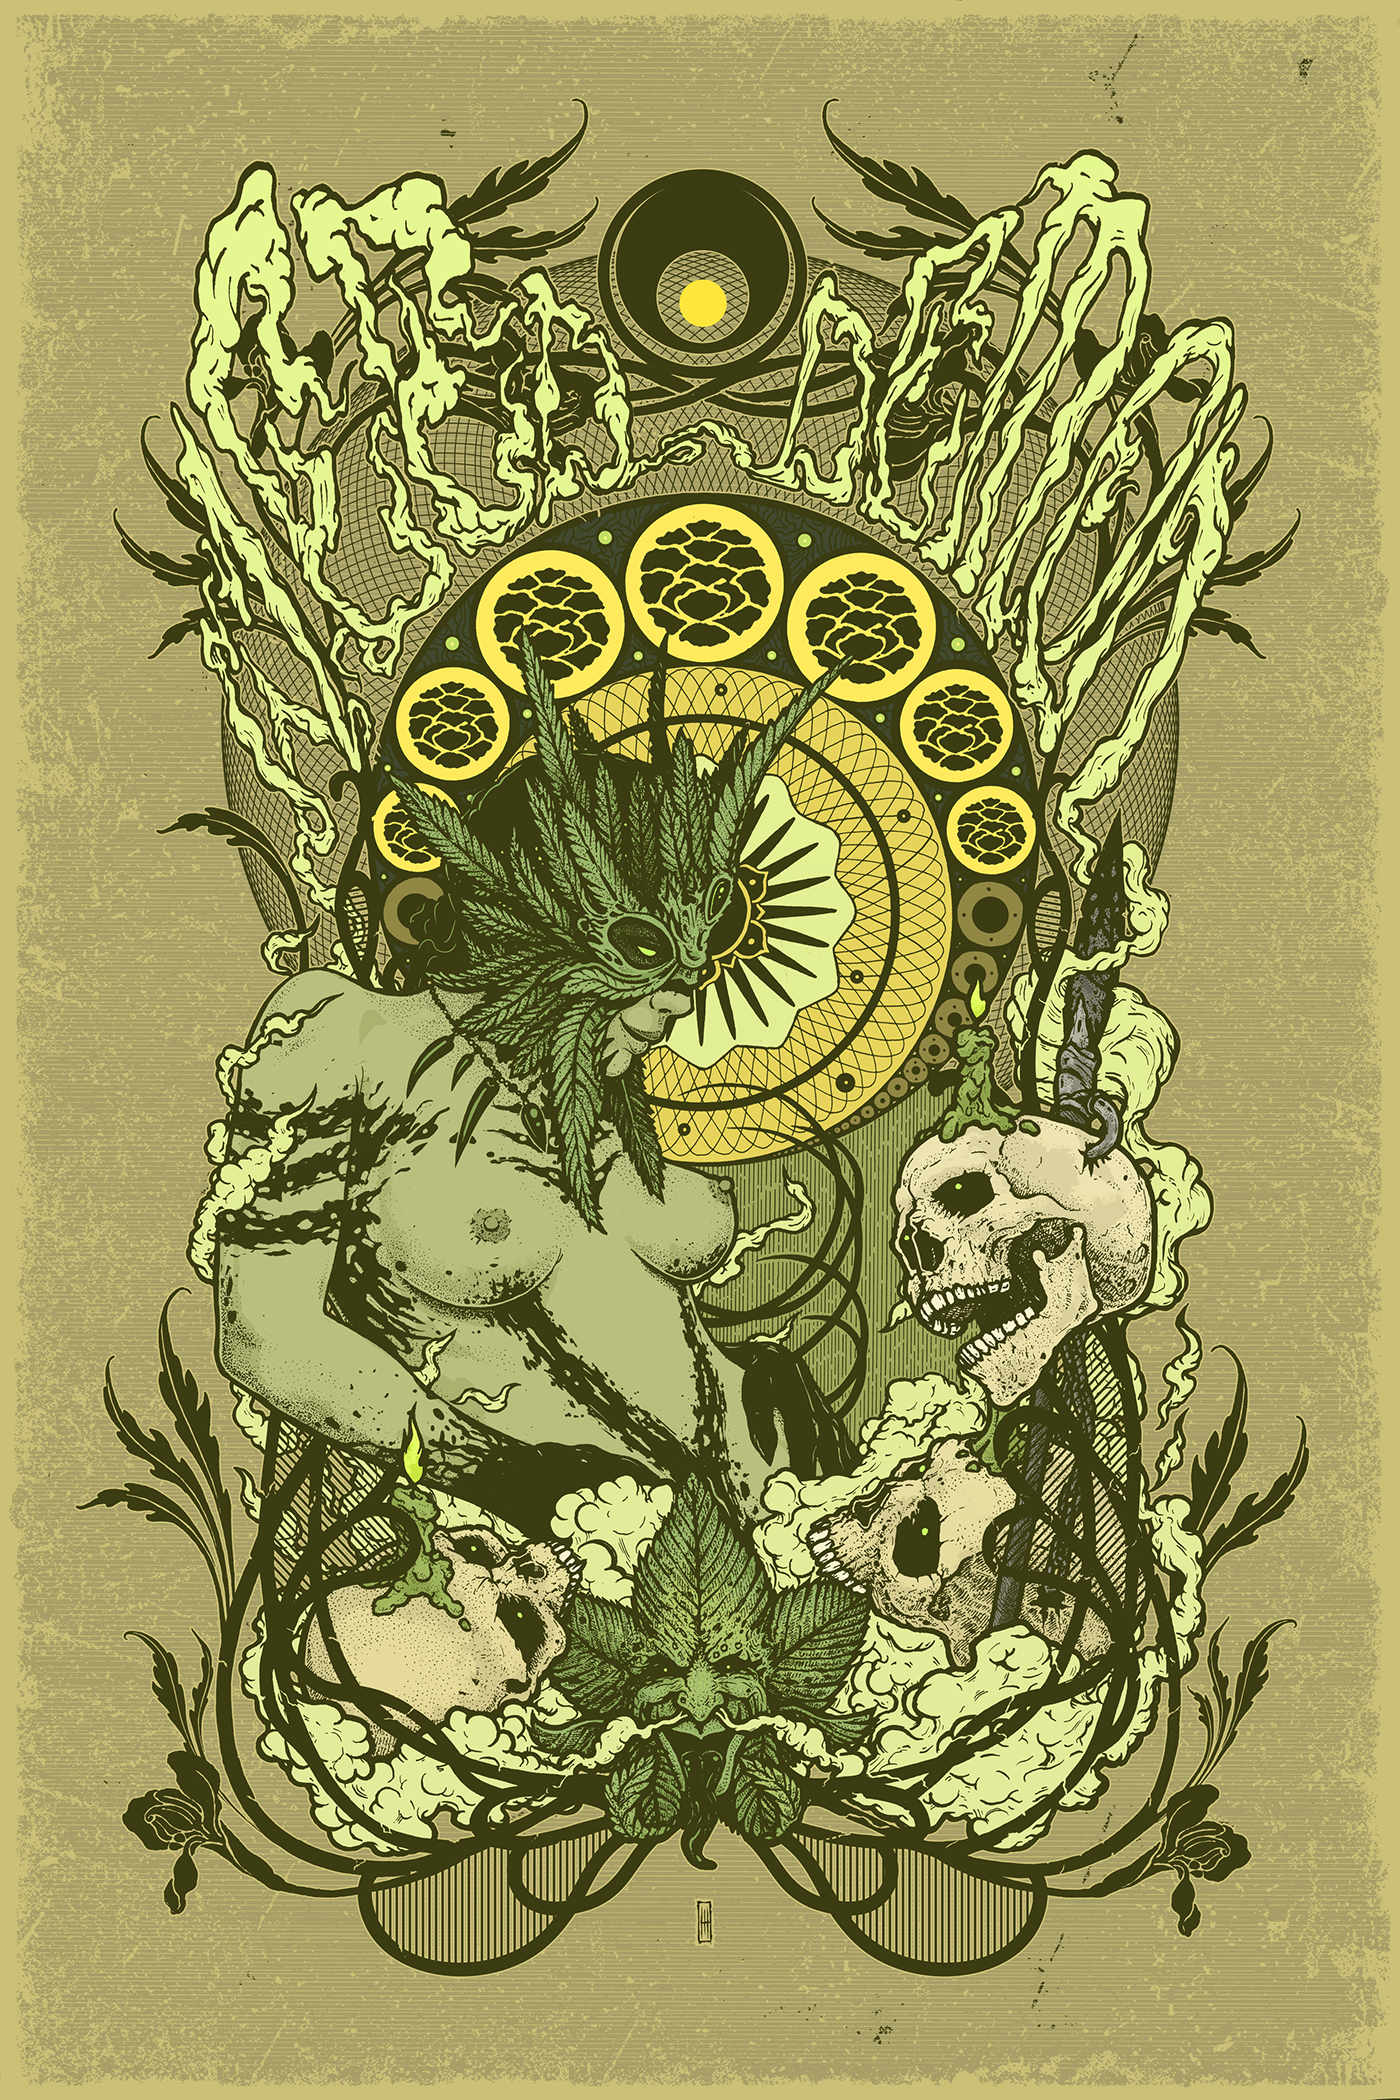 Weed Demon(US) - band poster artwork on Behance | Be | Band